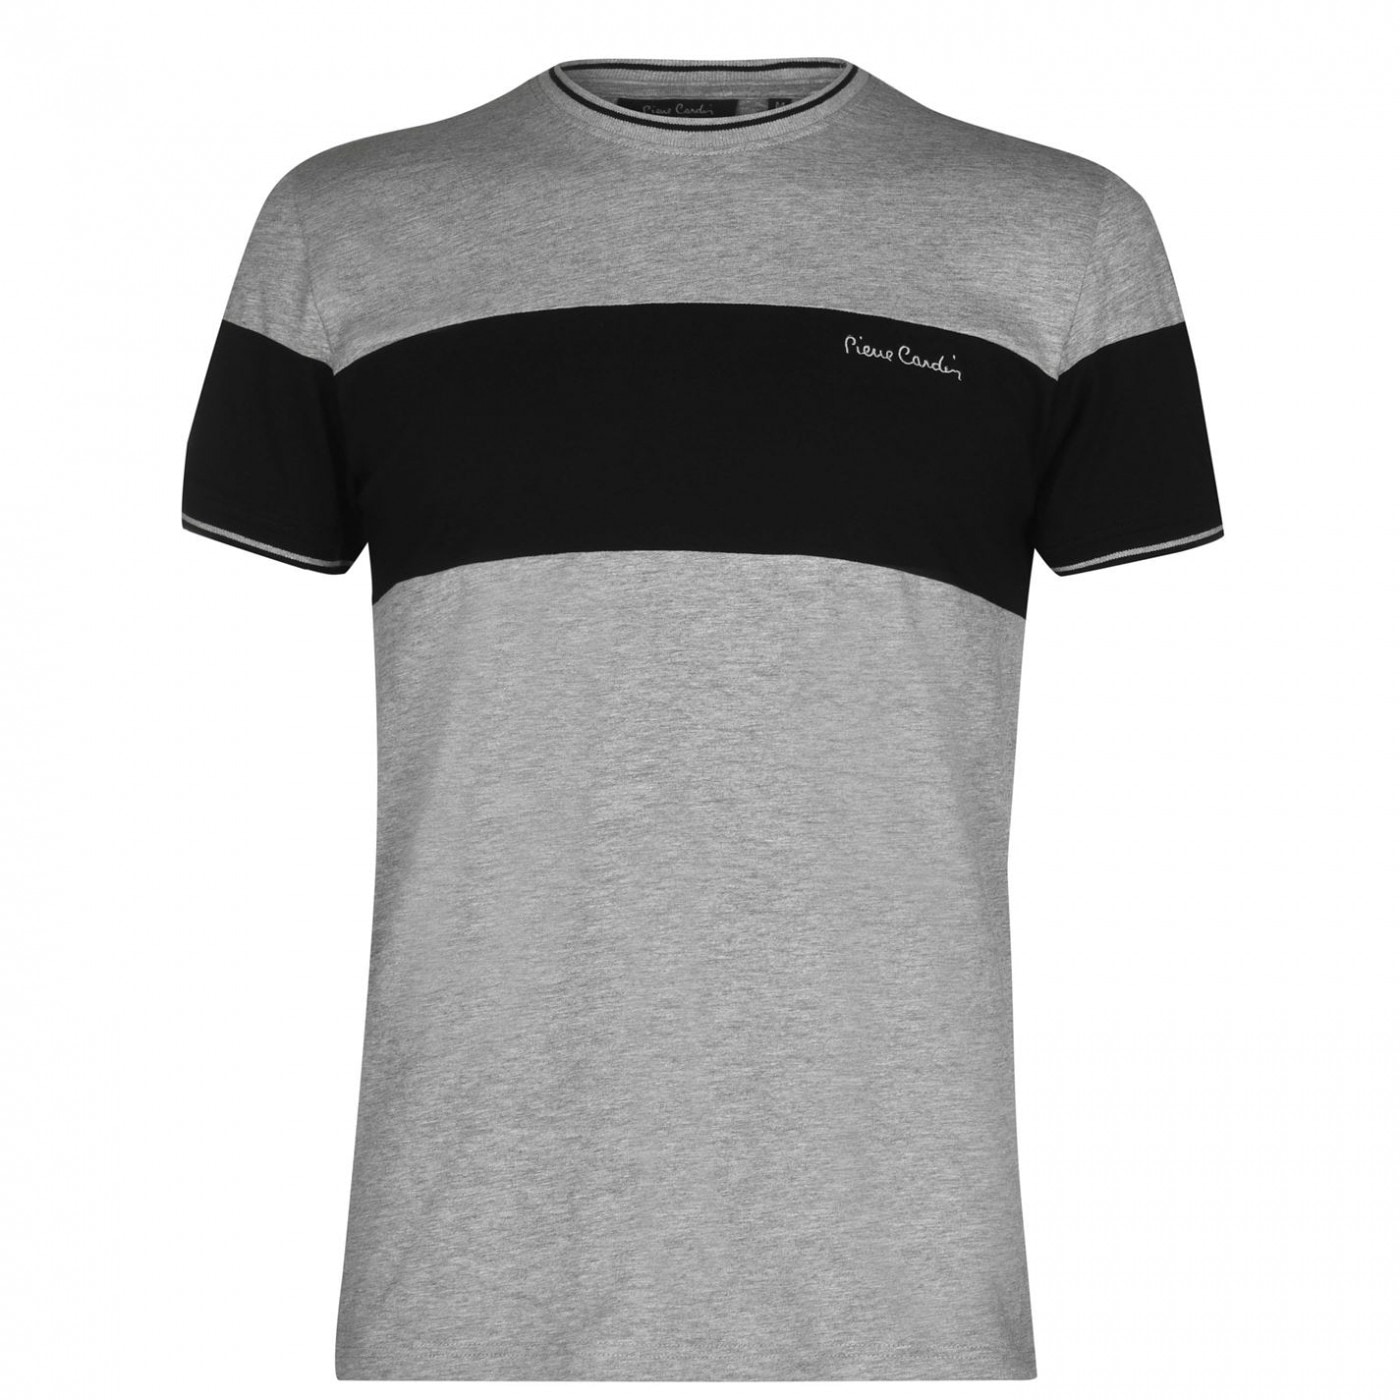 Pierre Cardin Cut and Sew Tipped T Shirt Mens